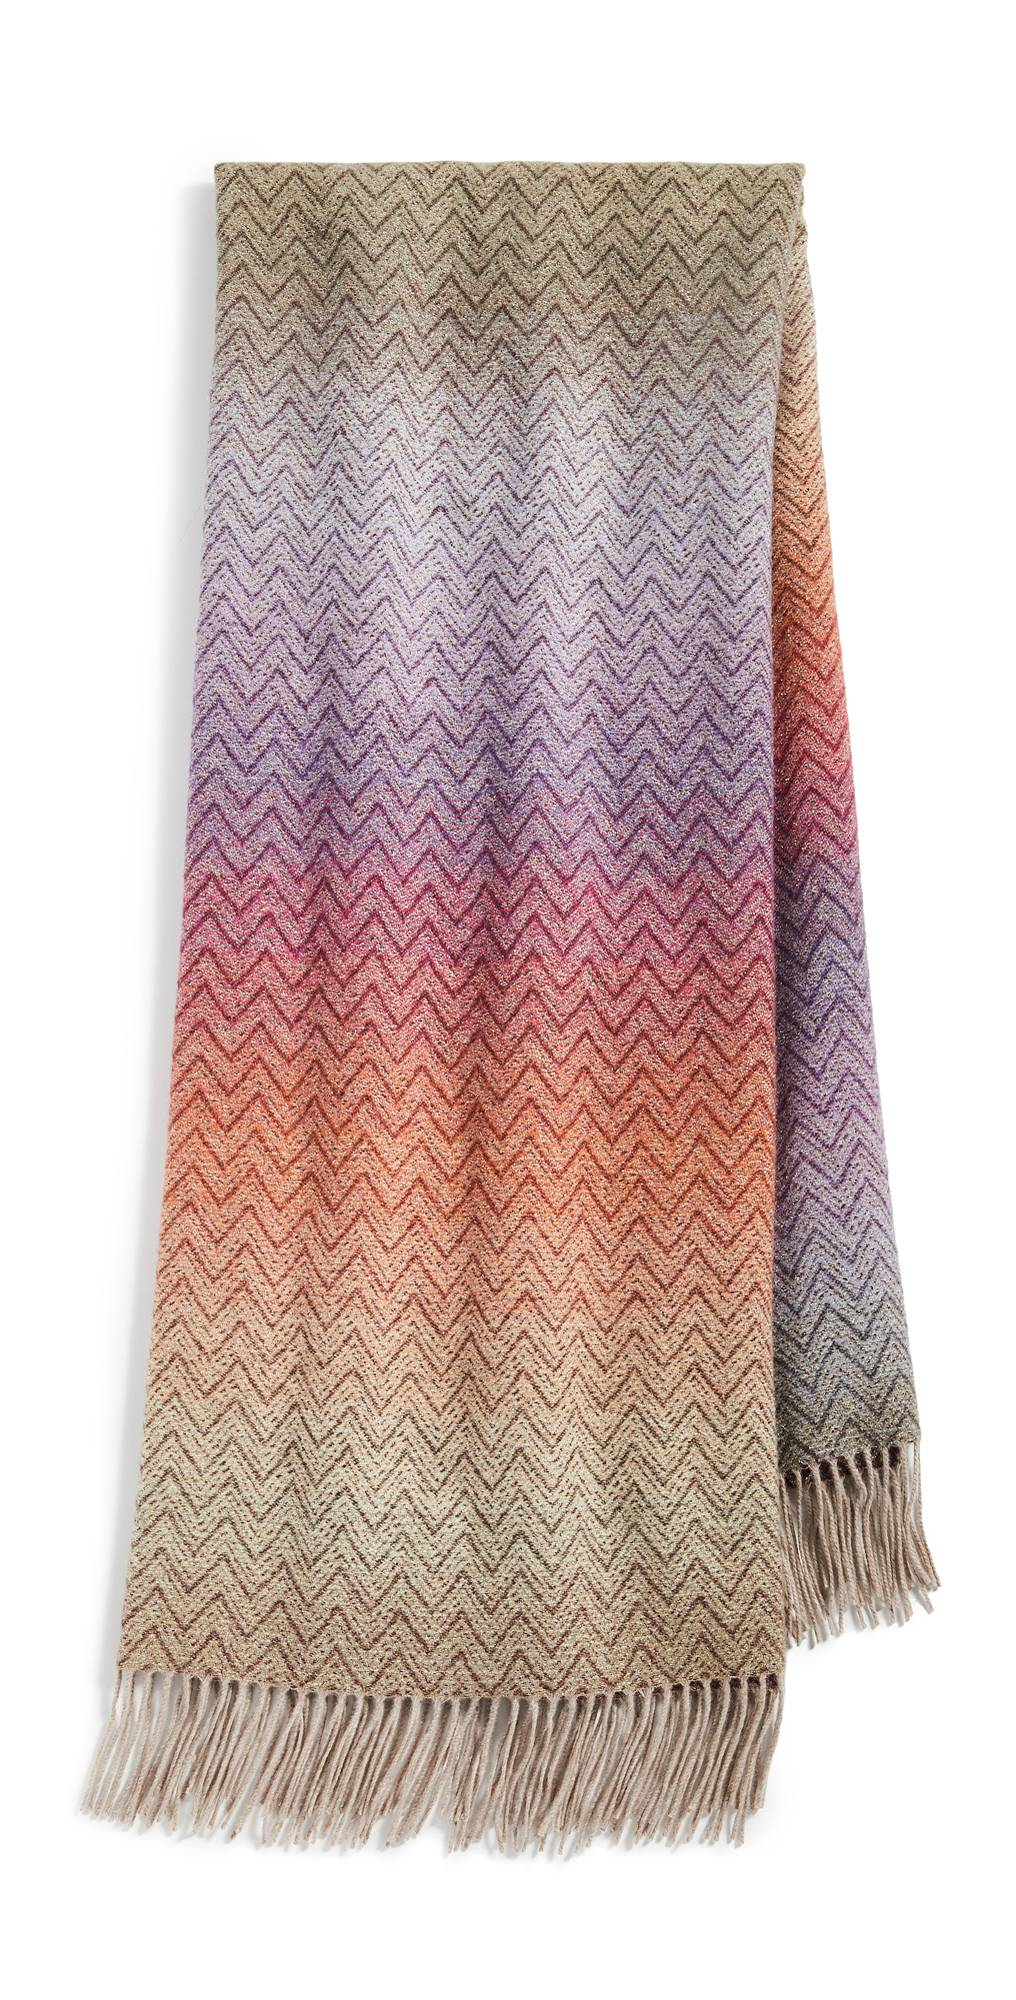 Missoni Home Pascal Throw Blanket  - Multi Red - Size: One Size